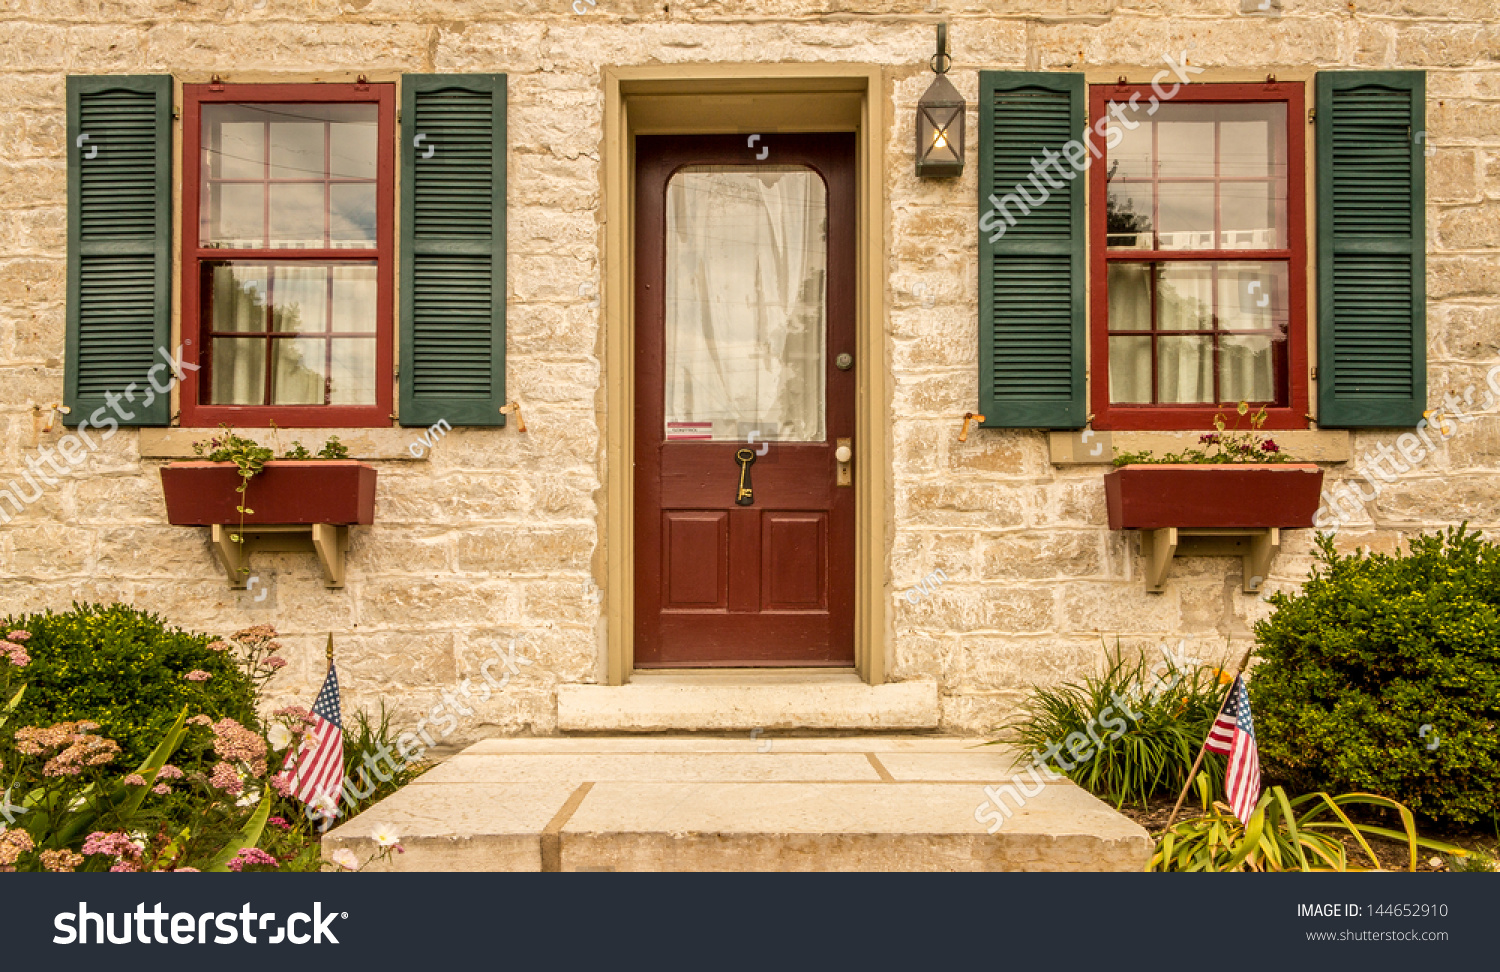 Red Door Green Shutters Flower Boxes Stock Photo 144652910